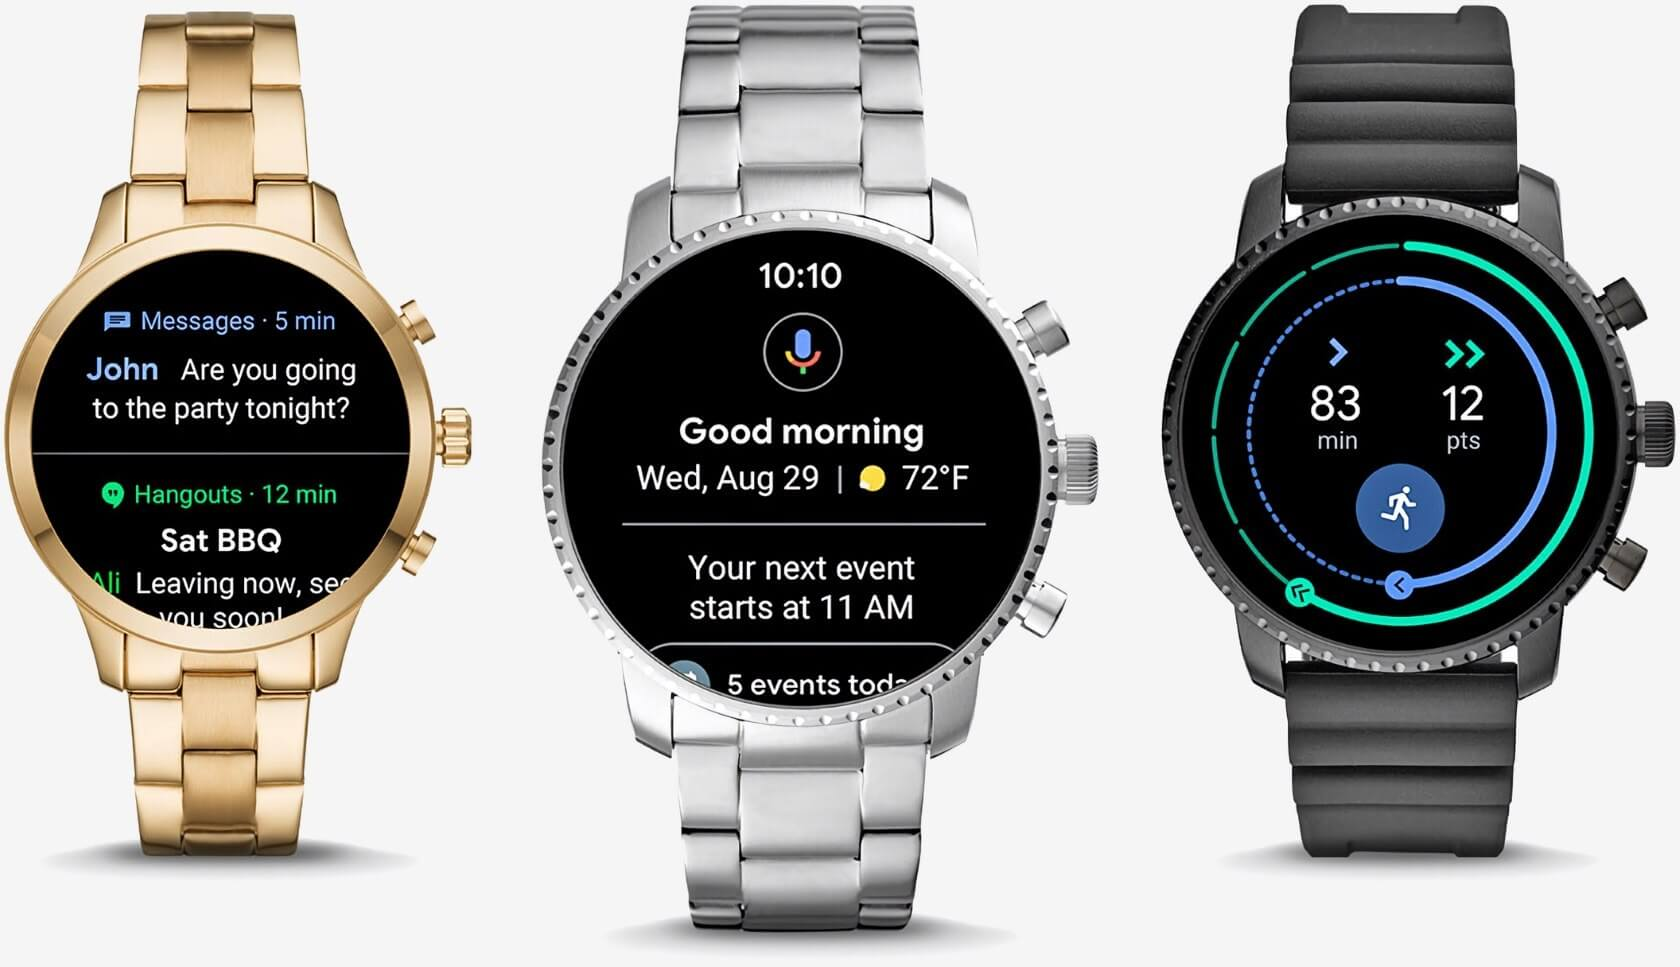 Google To Acquire Fossil Smartwatch Tech For RM164 Million